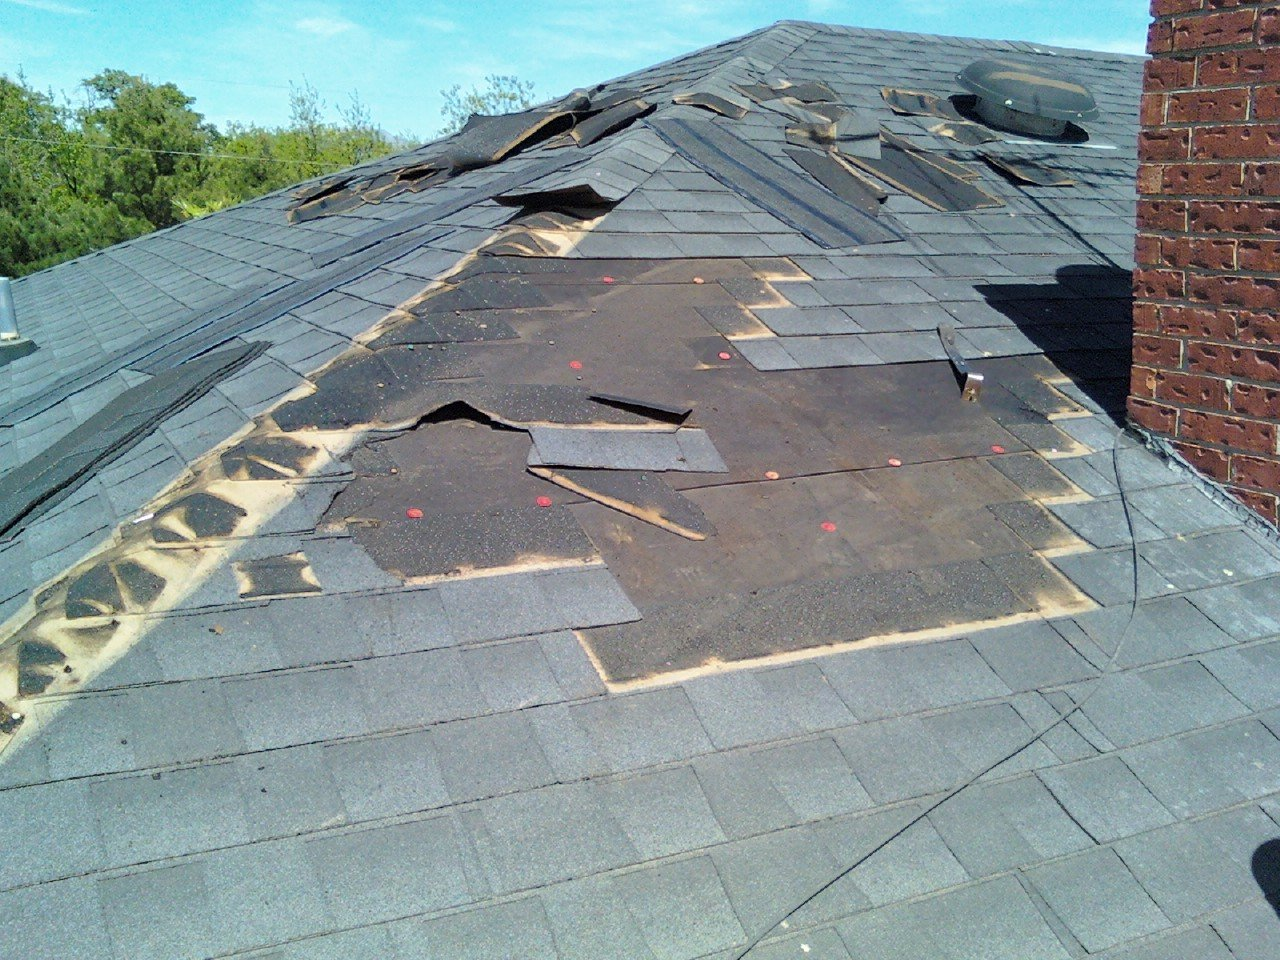 Roof repair. A damaged roof with missing shingles.